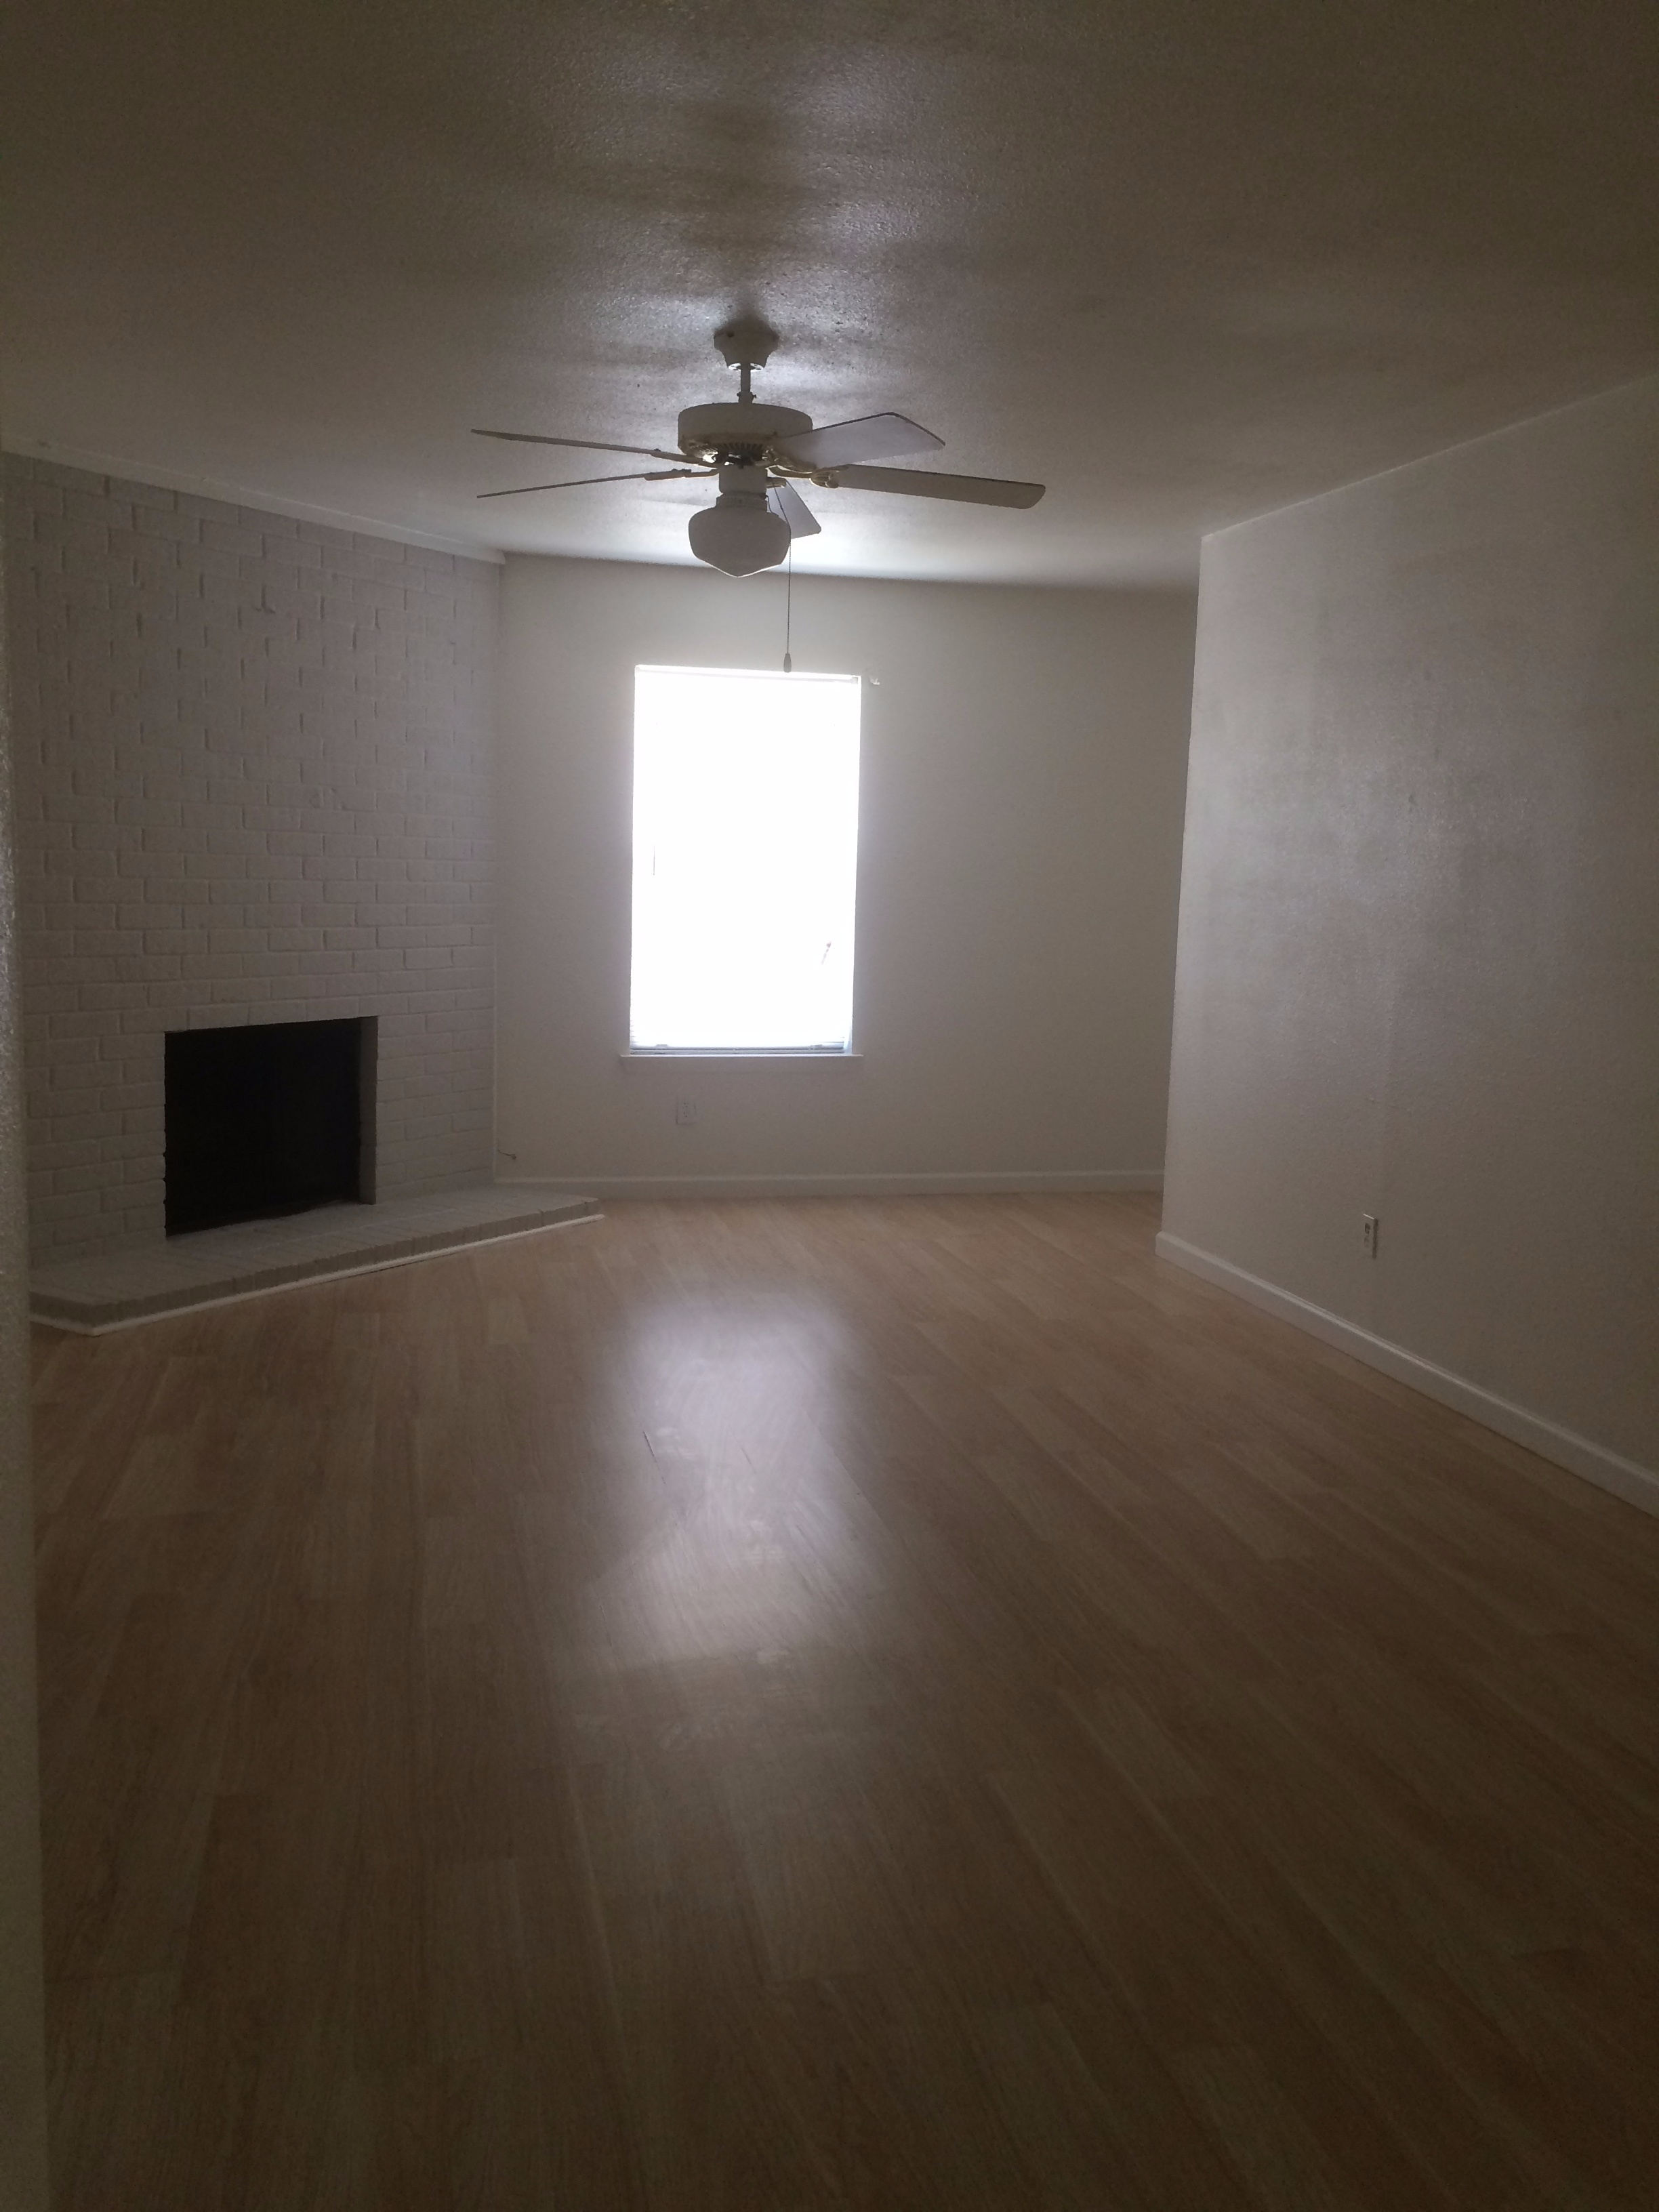 Duplex three bed room 1 1/2 bath one car garage